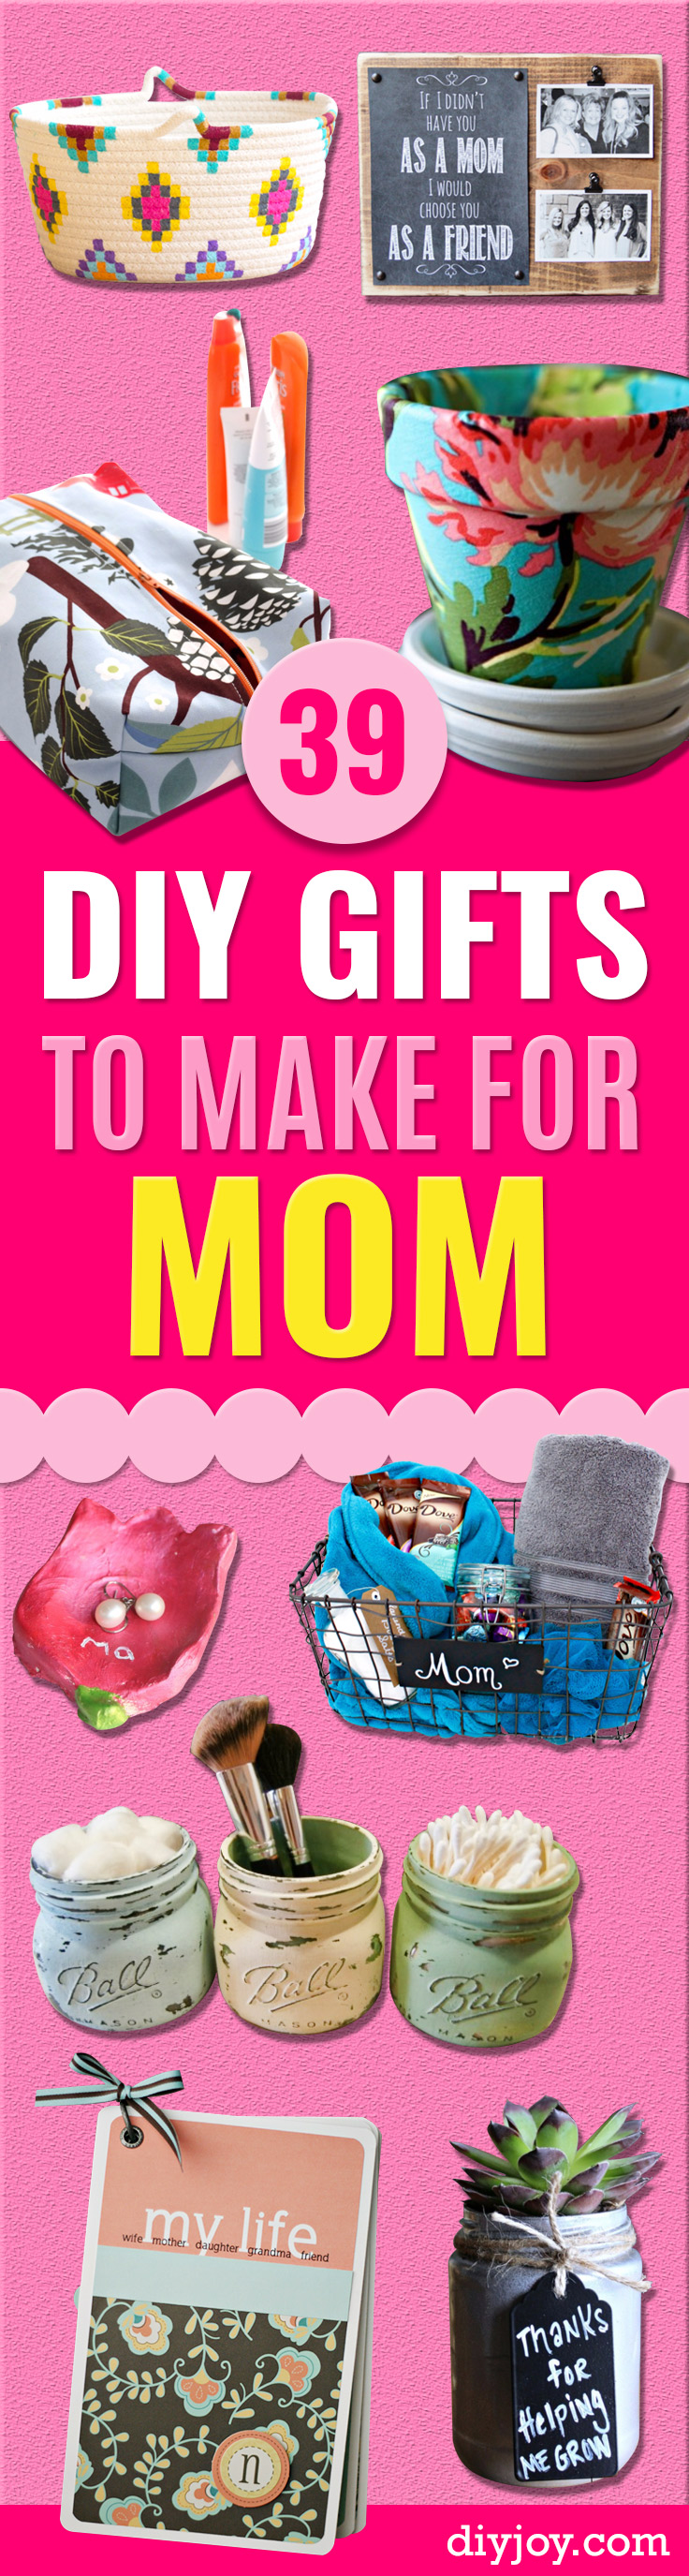 Diy Gifts For Mom Best Craft Projects And Gift Ideas You Can Make Your